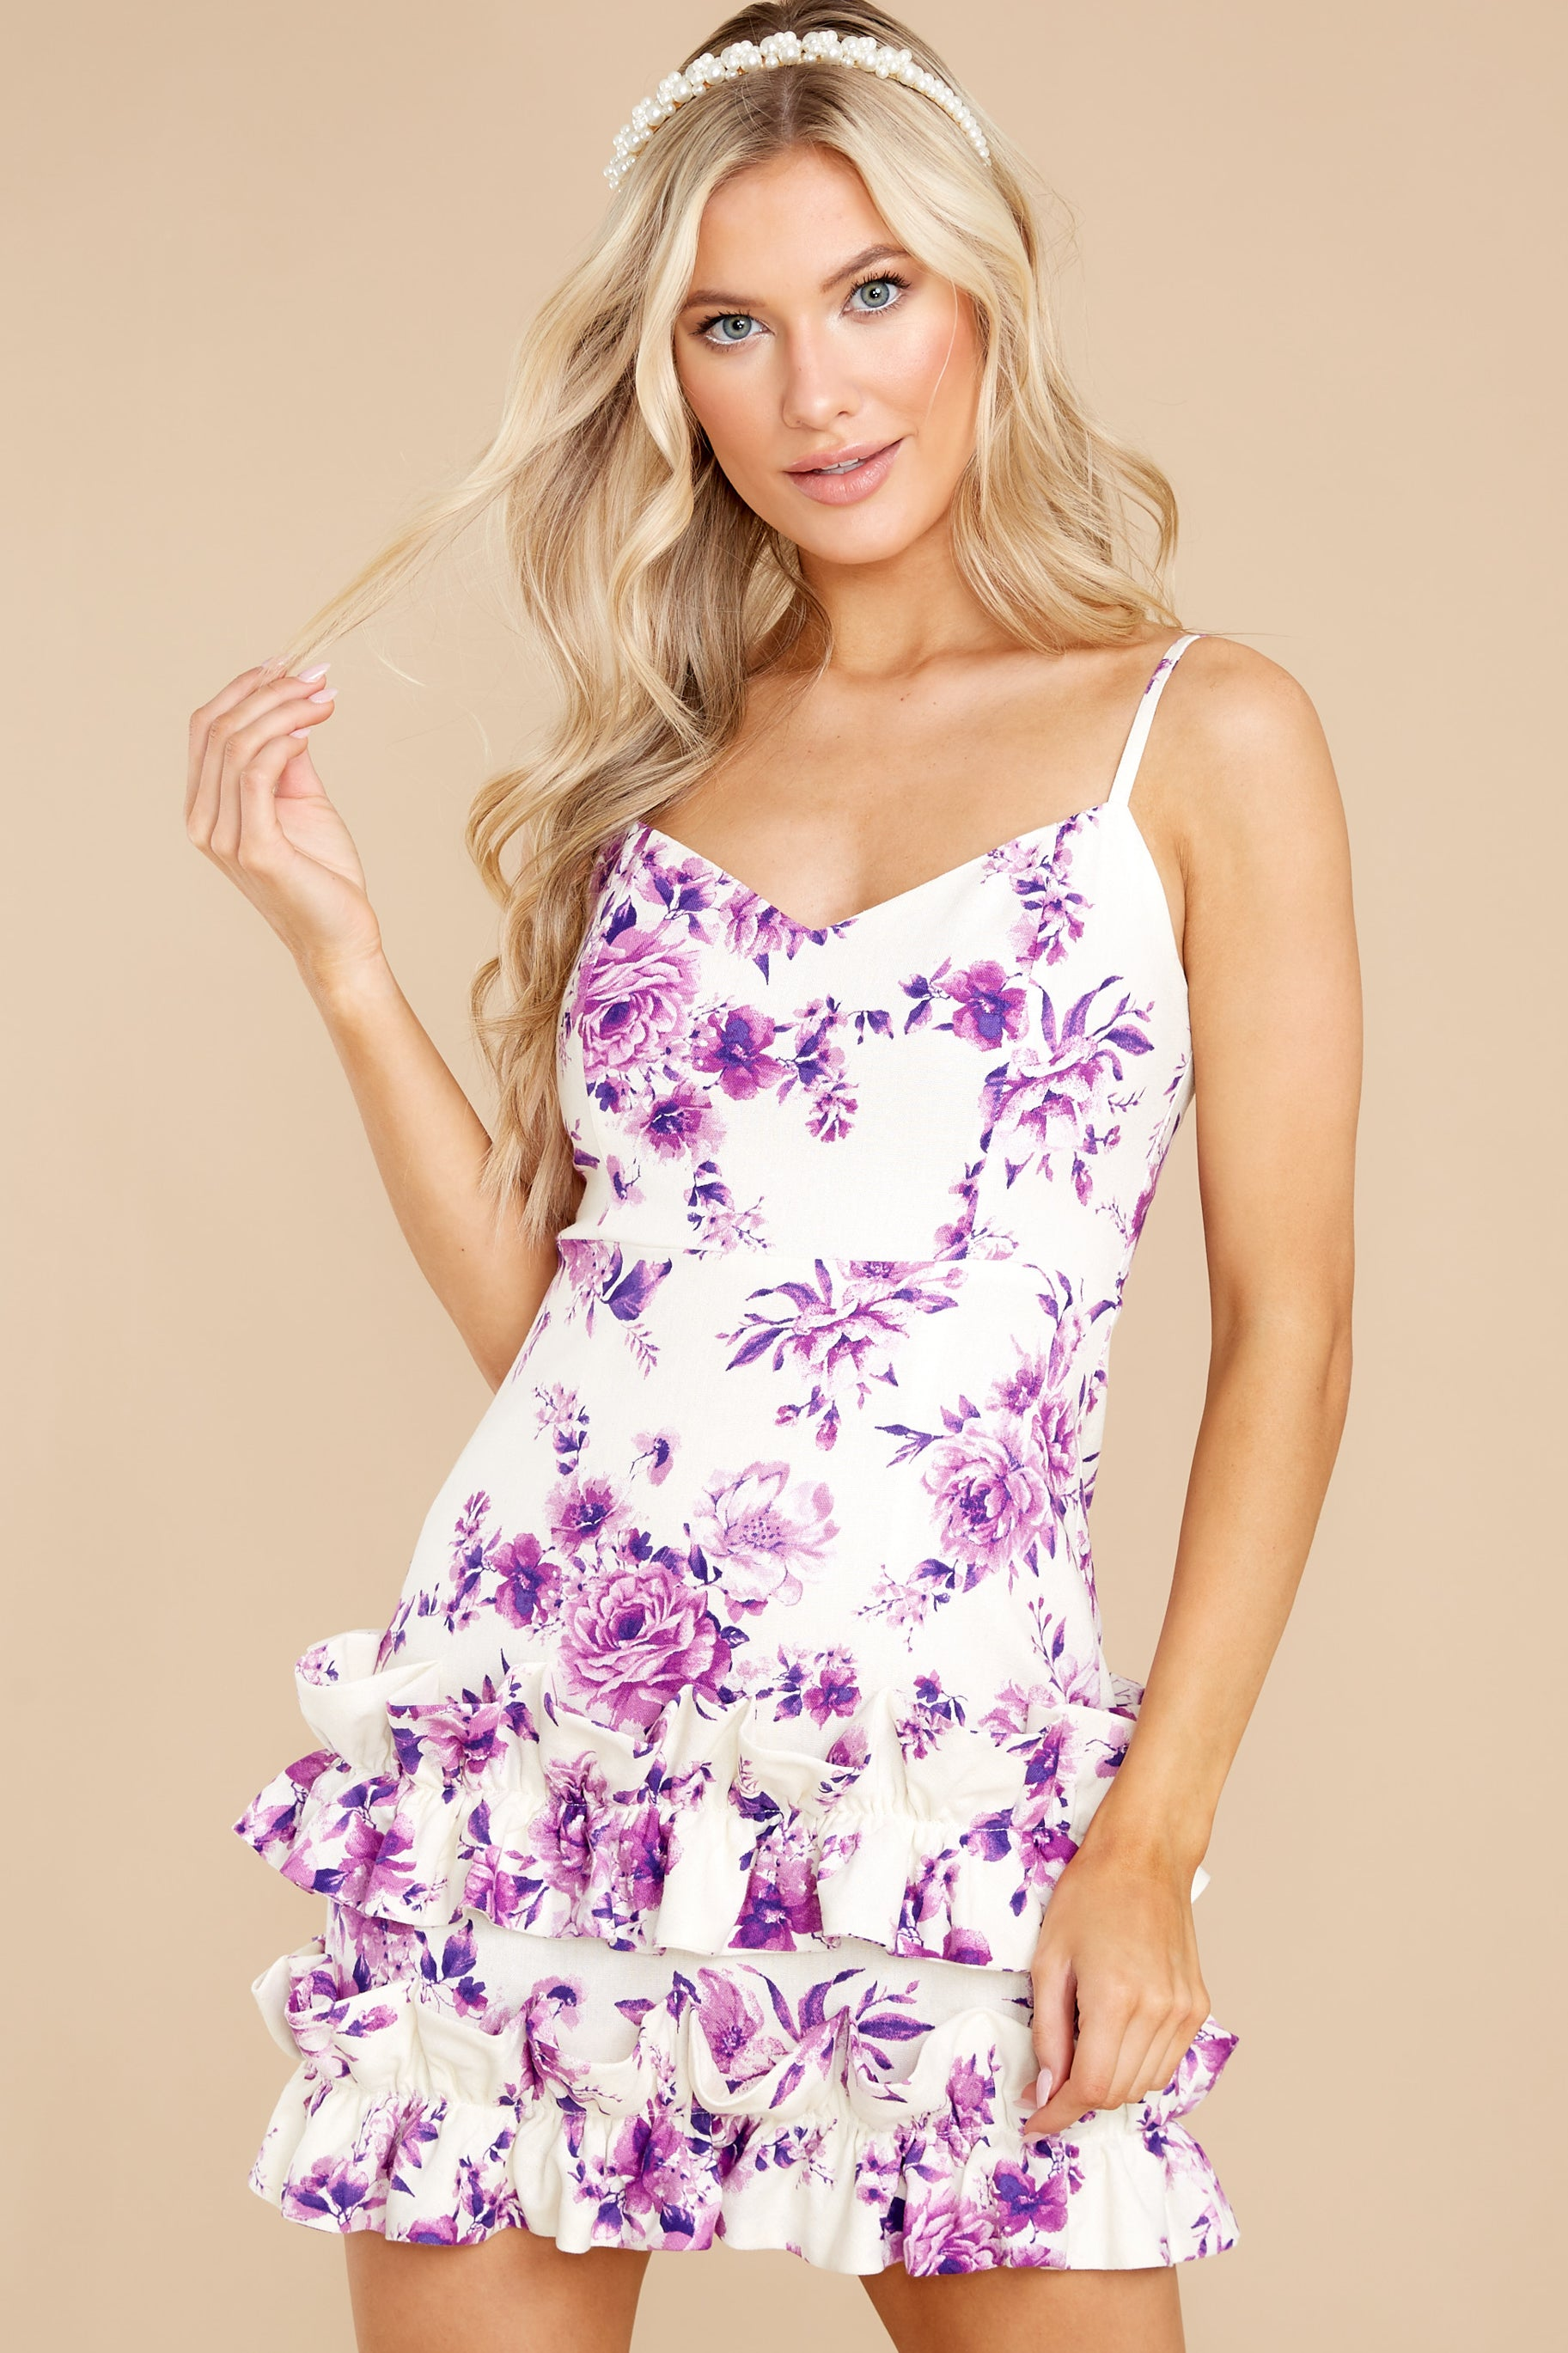 7 In Blossom White And Purple Floral Print Dress at reddress.com